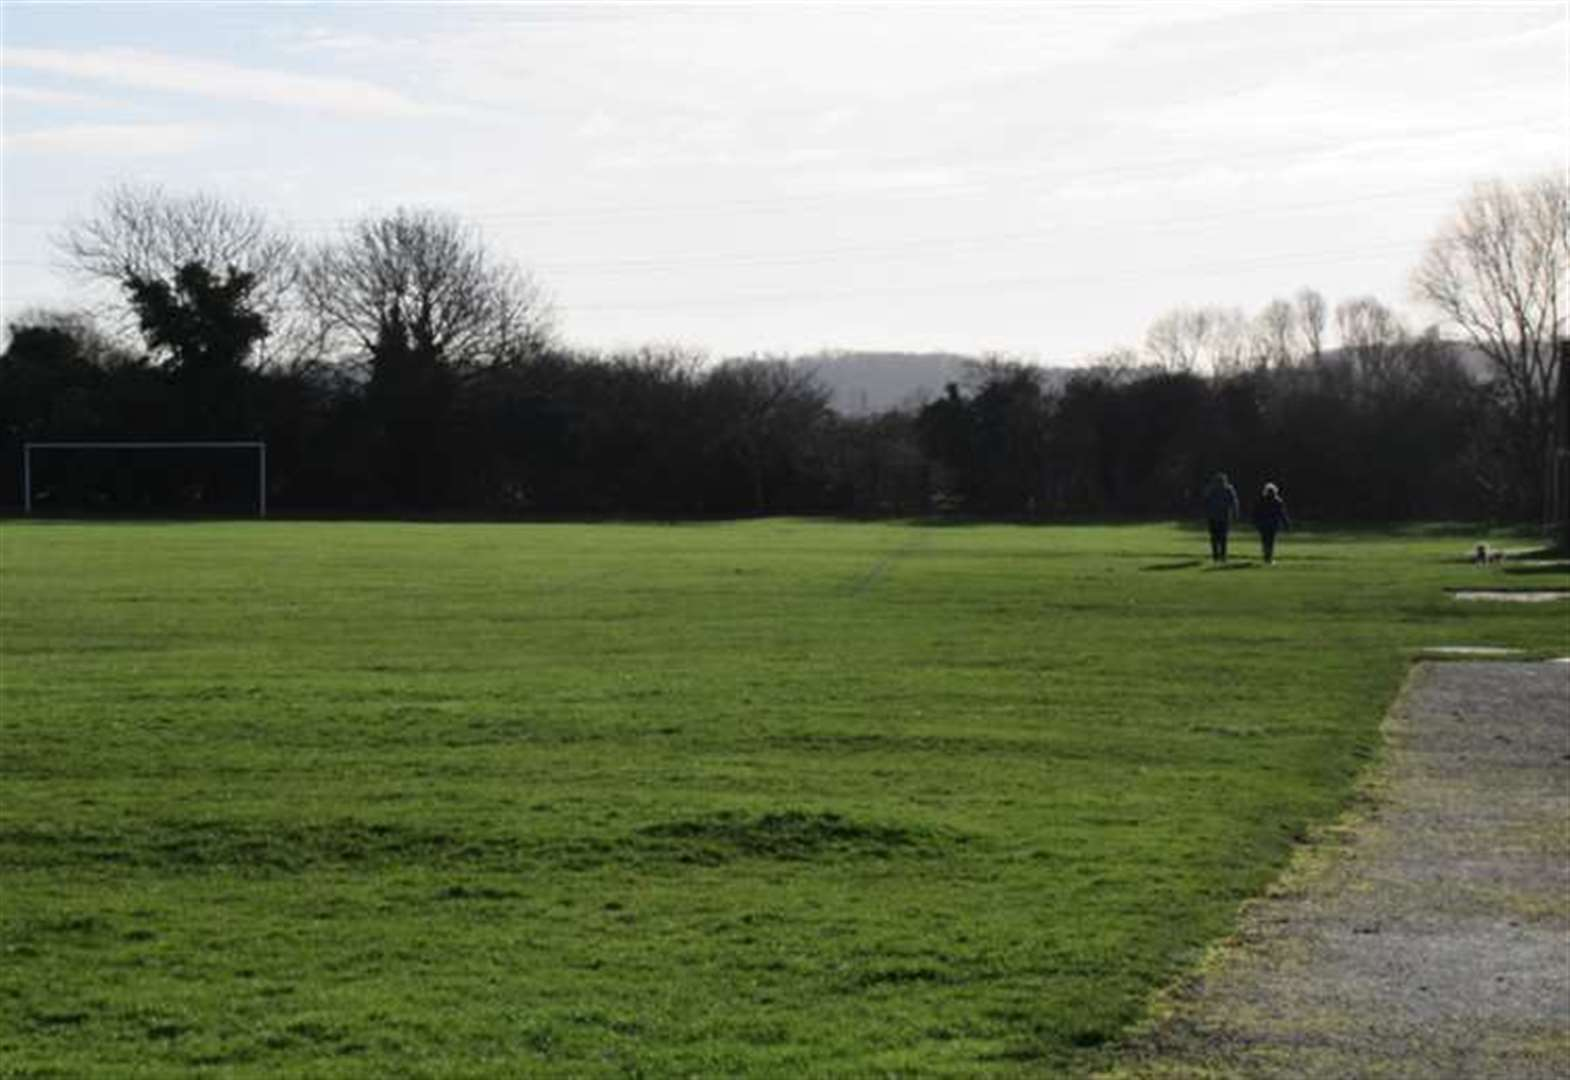 Bid for town council to buy Stamford sports fields for just £1